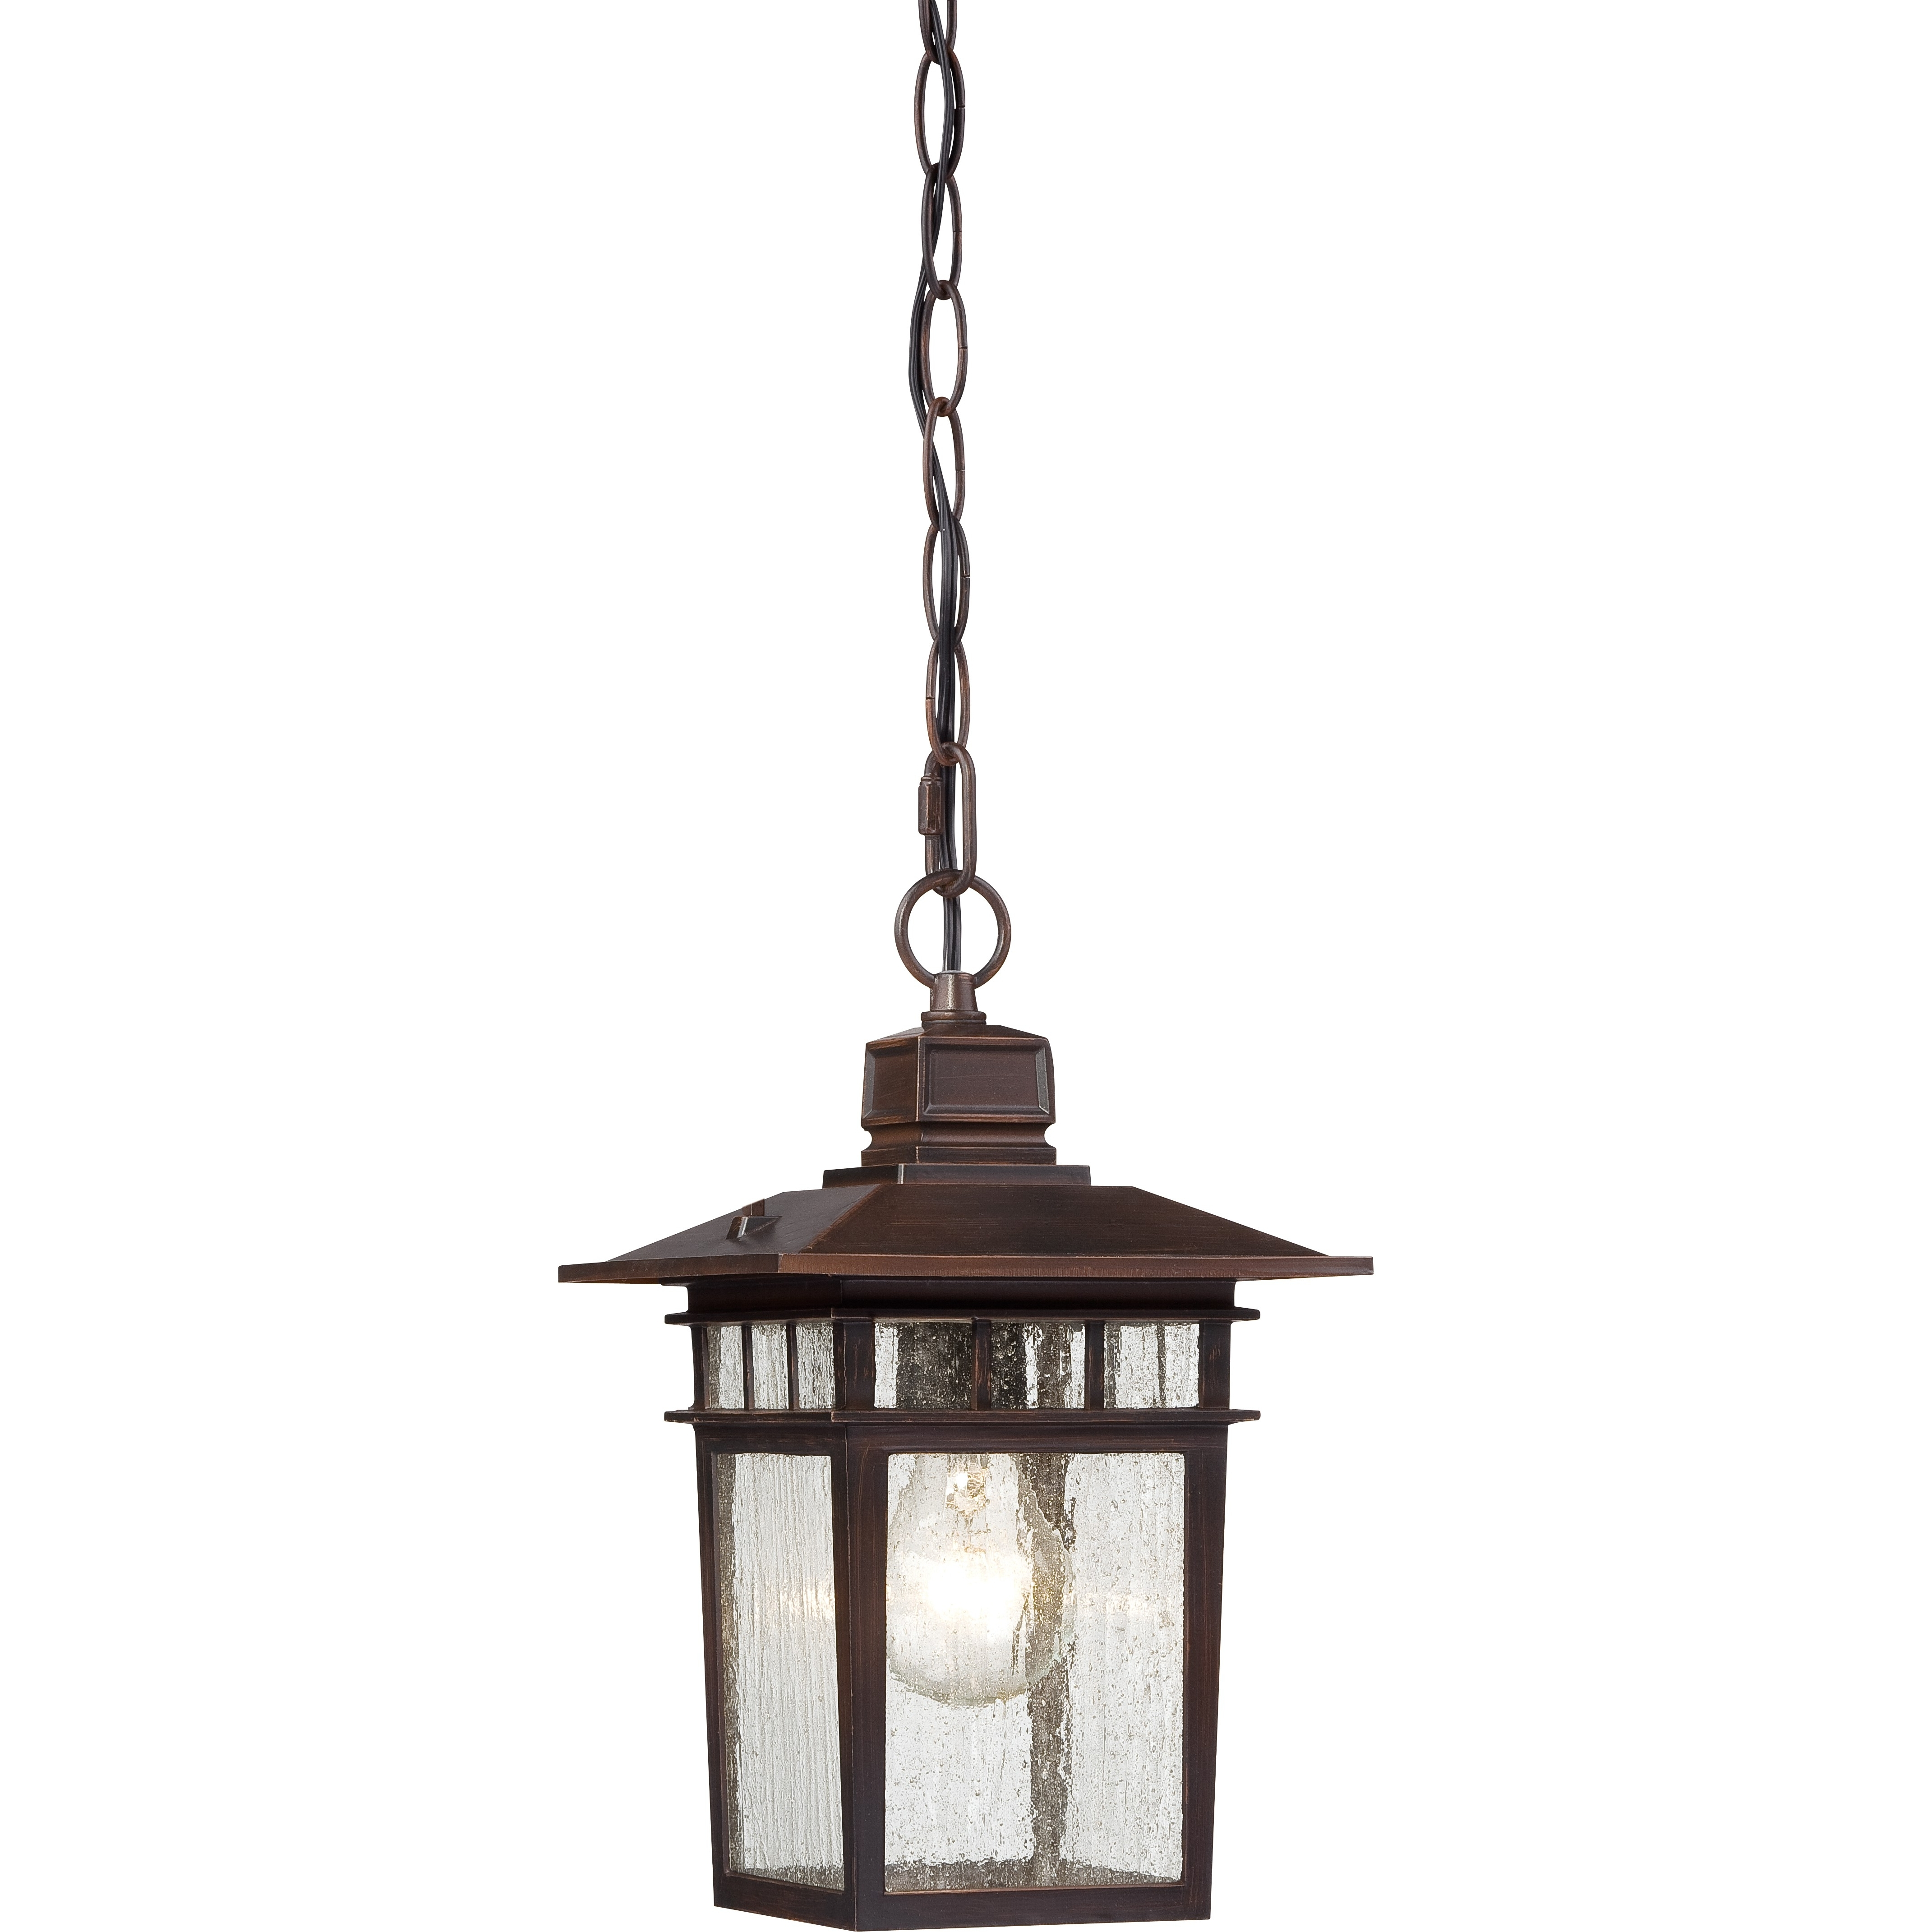 Cove Neck With Rustic Outdoor Hanging Lights (View 3 of 20)